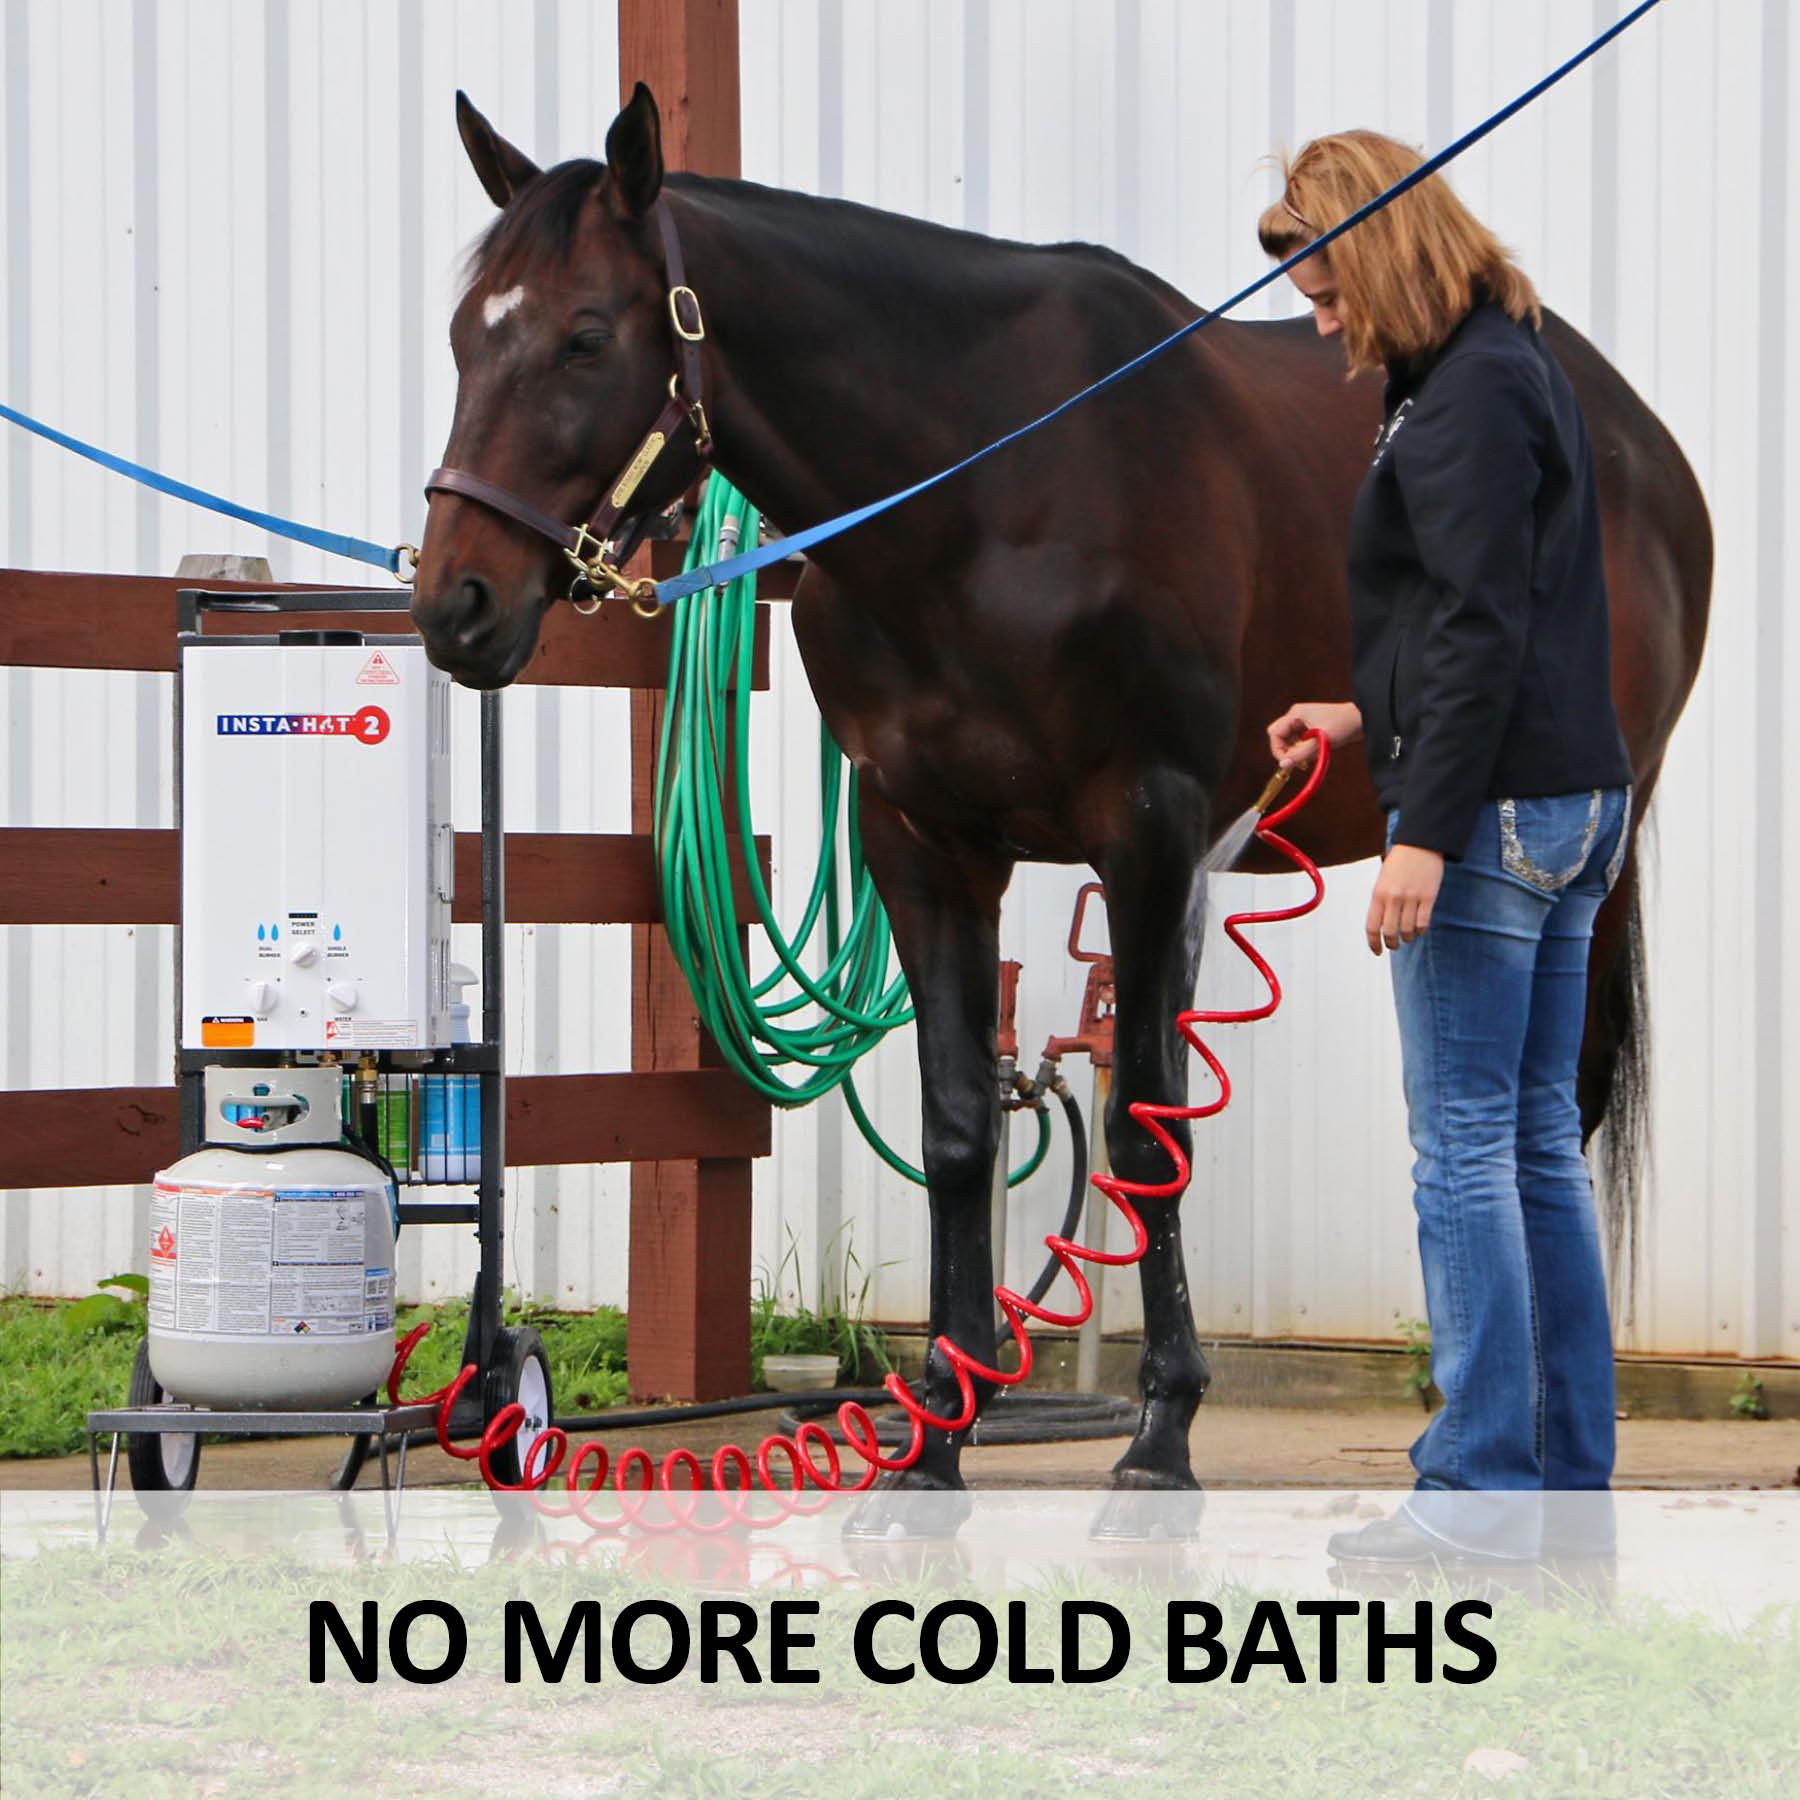 insta hot 2 portable horse washing system combo with cart